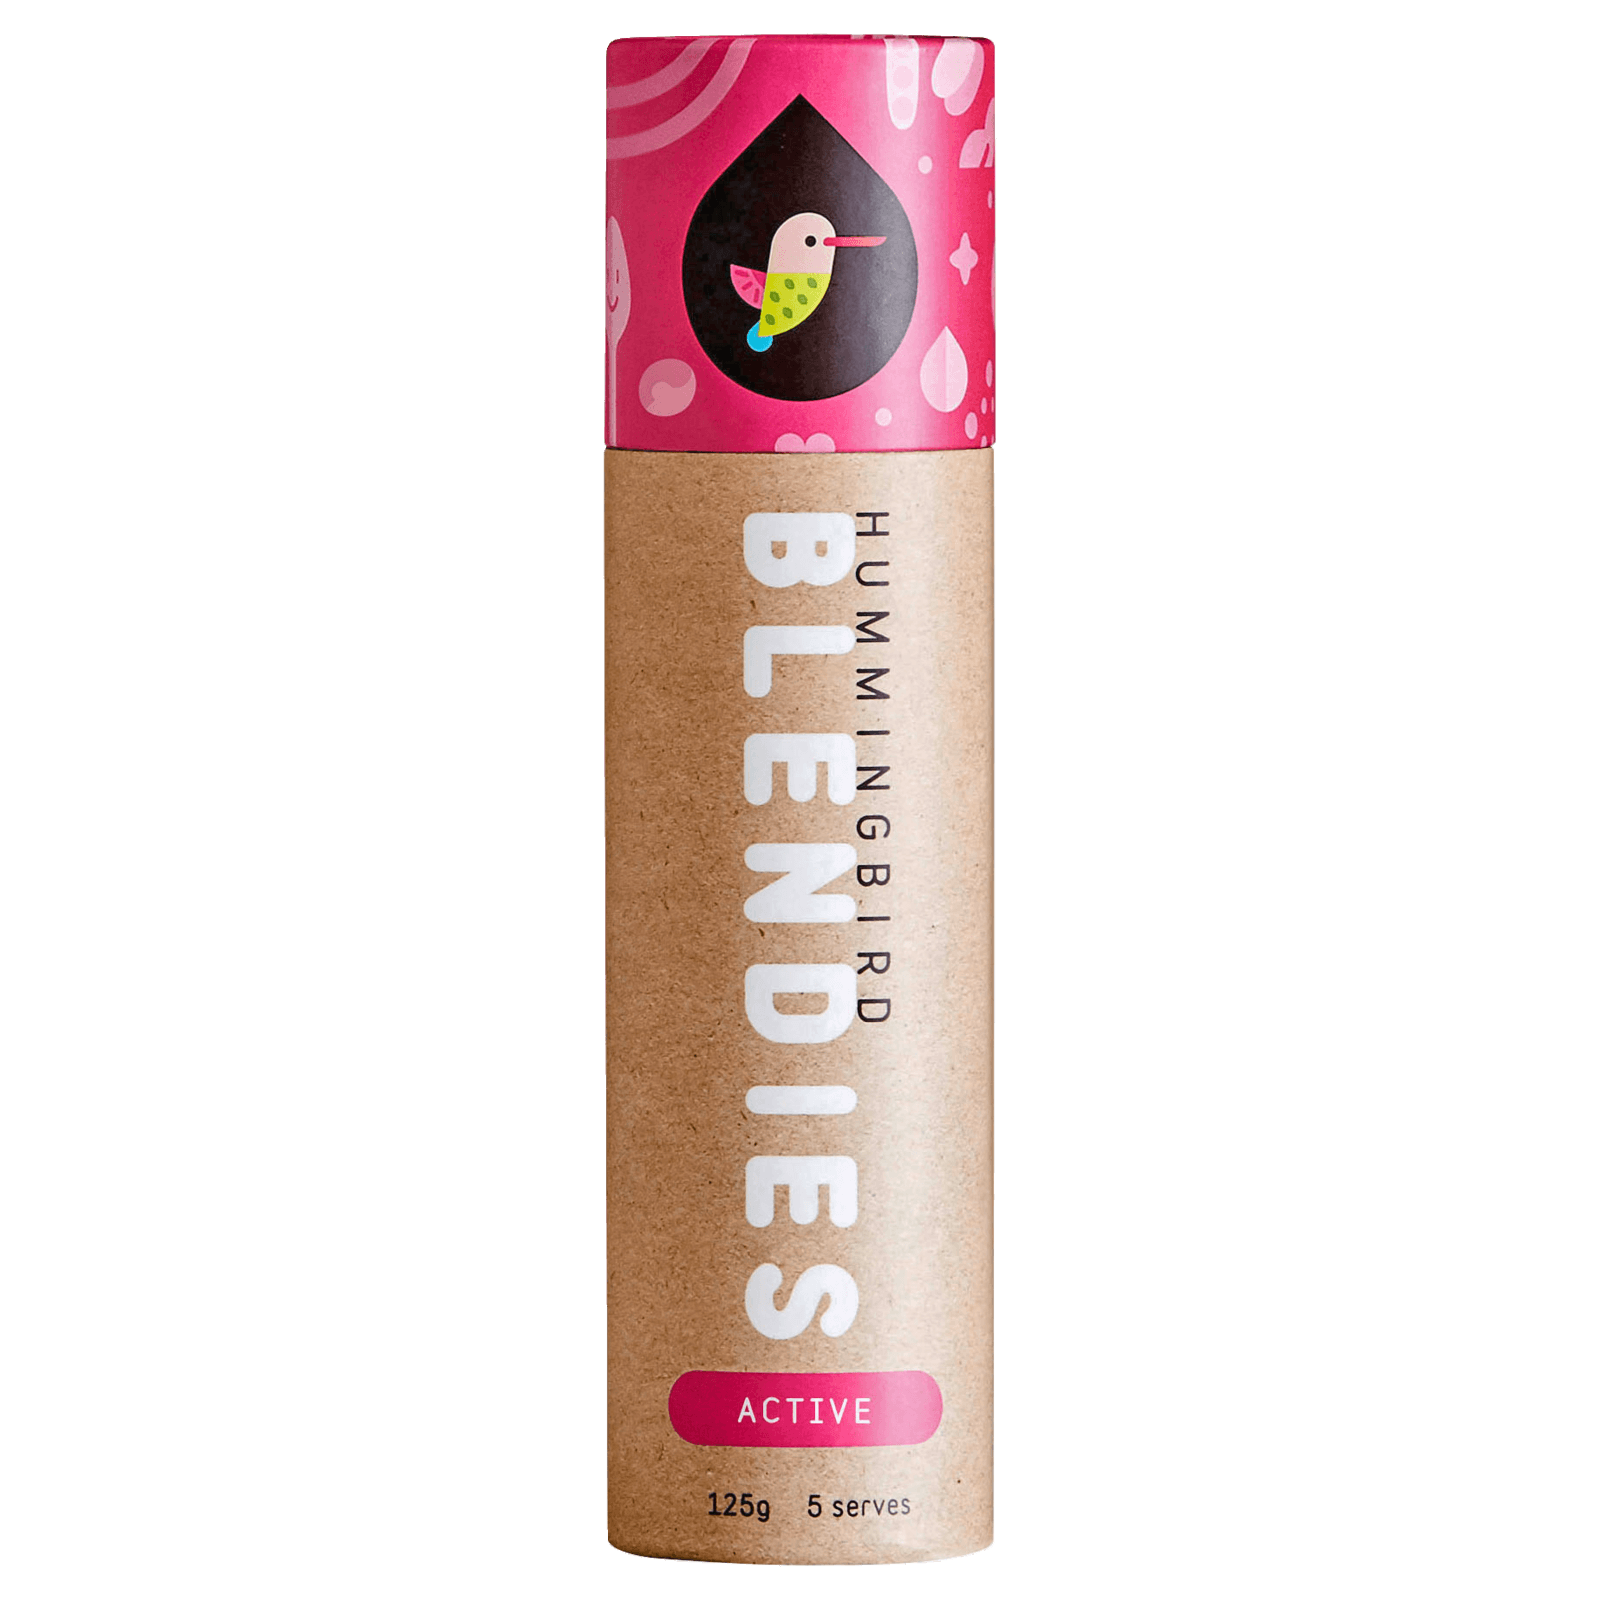 Hummingbird Blendies Smoothie Balls Active 125g